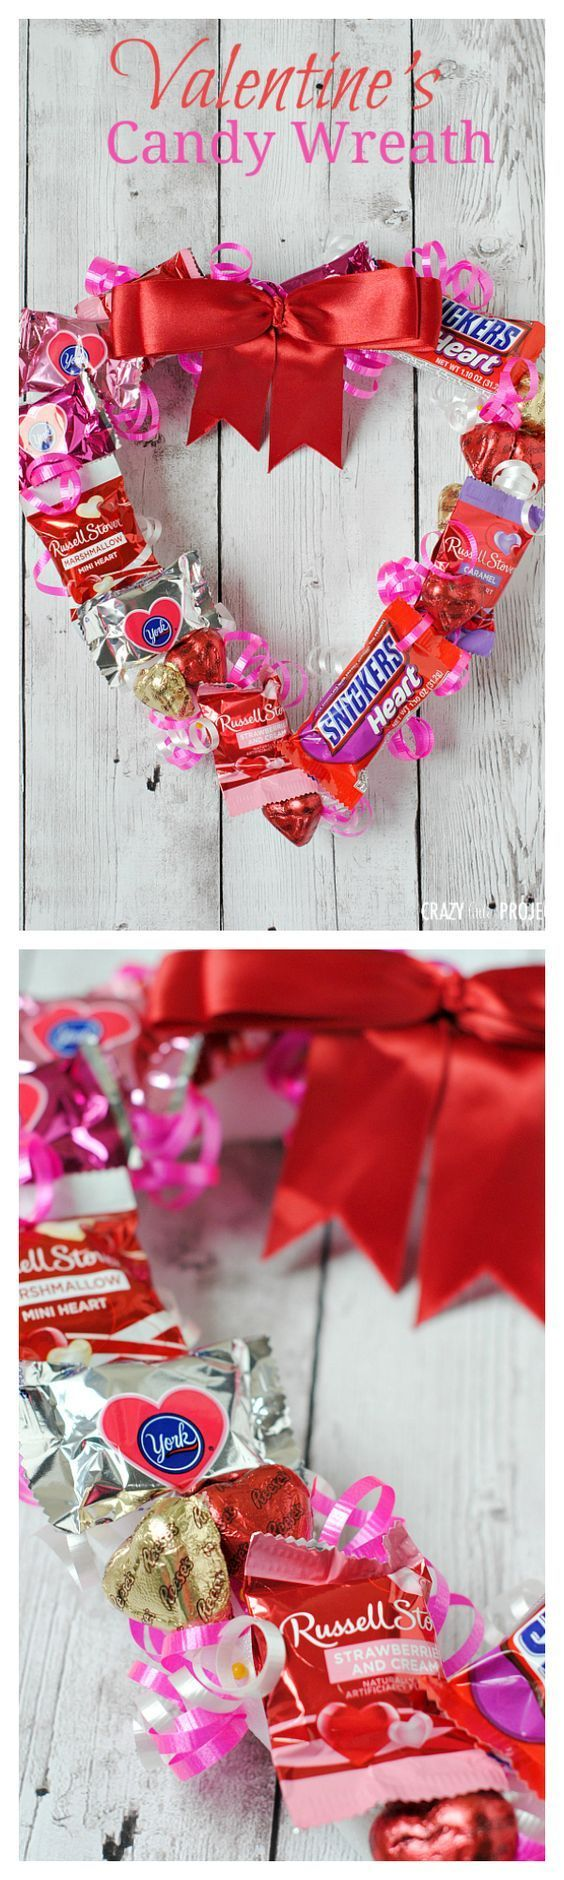 Best 25+ Cute valentine ideas ideas on Pinterest | Cute valentines ...